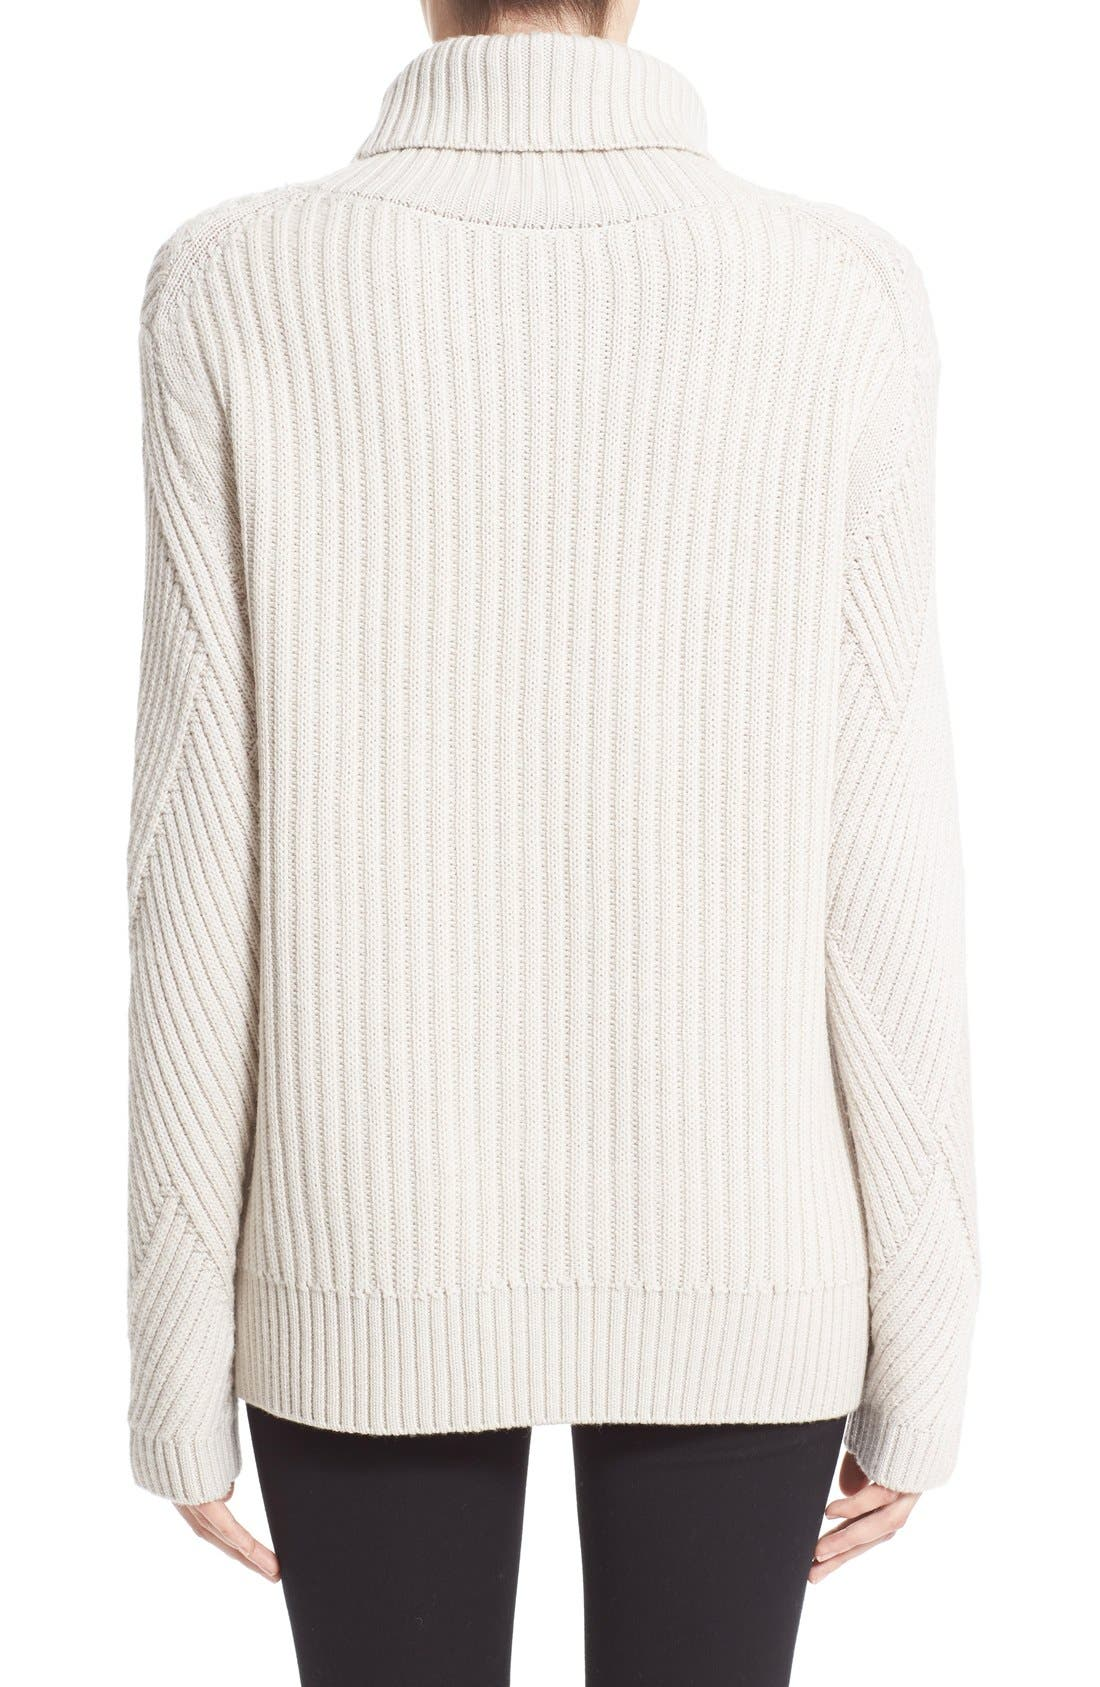 Alternate Image 2  - rag & bone 'Blithe' Merino Wool Turtleneck Sweater